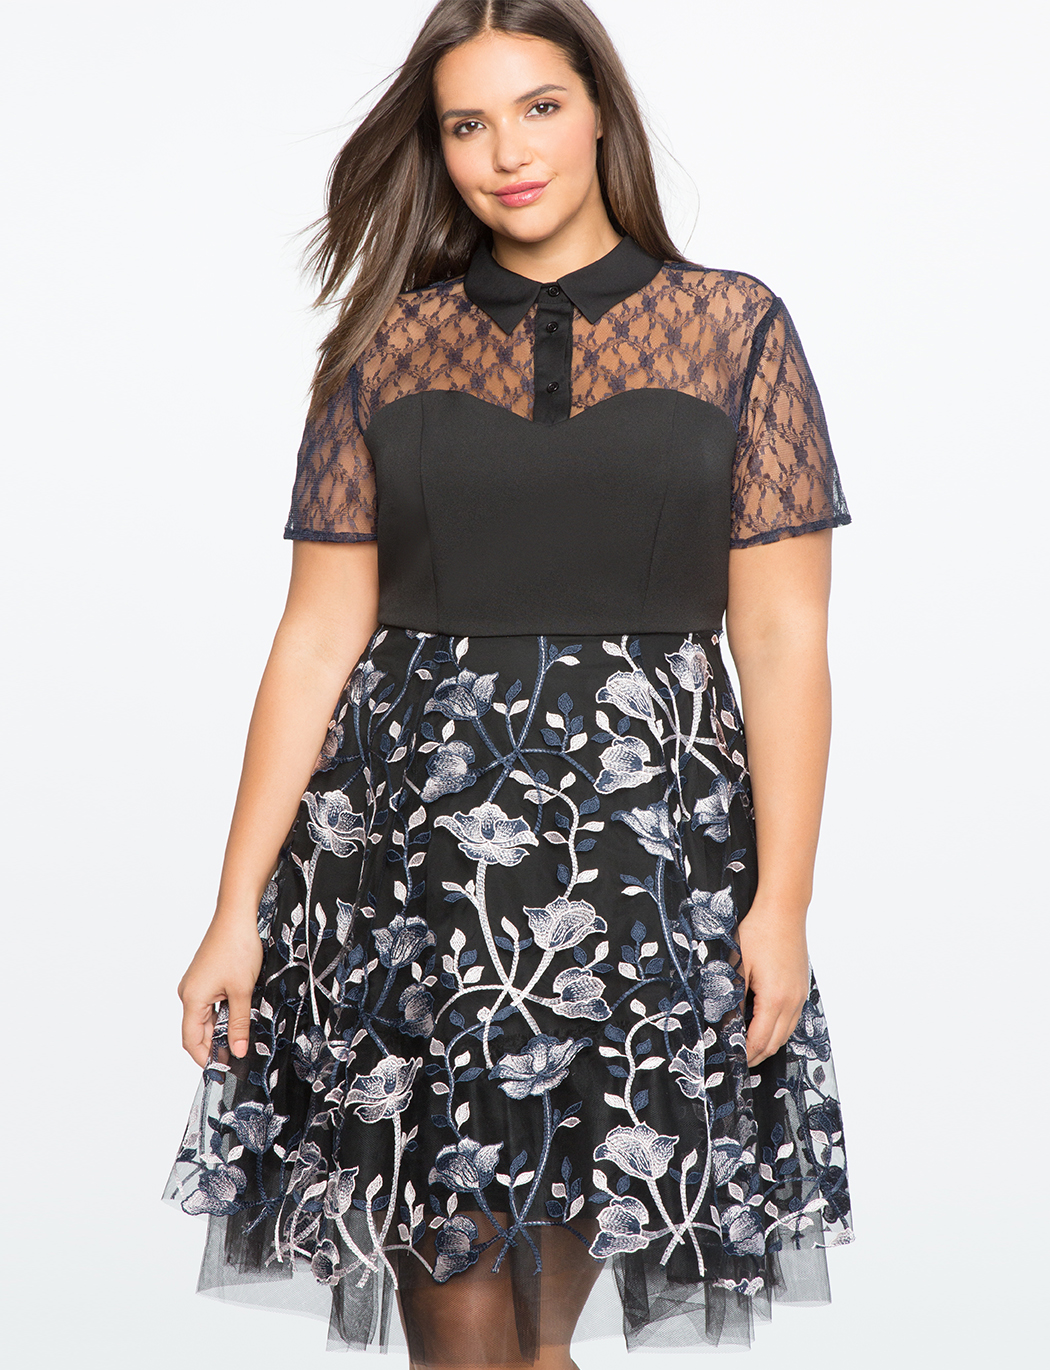 Embroidered Mesh Dress | Women\'s Plus Size Dresses | ELOQUII